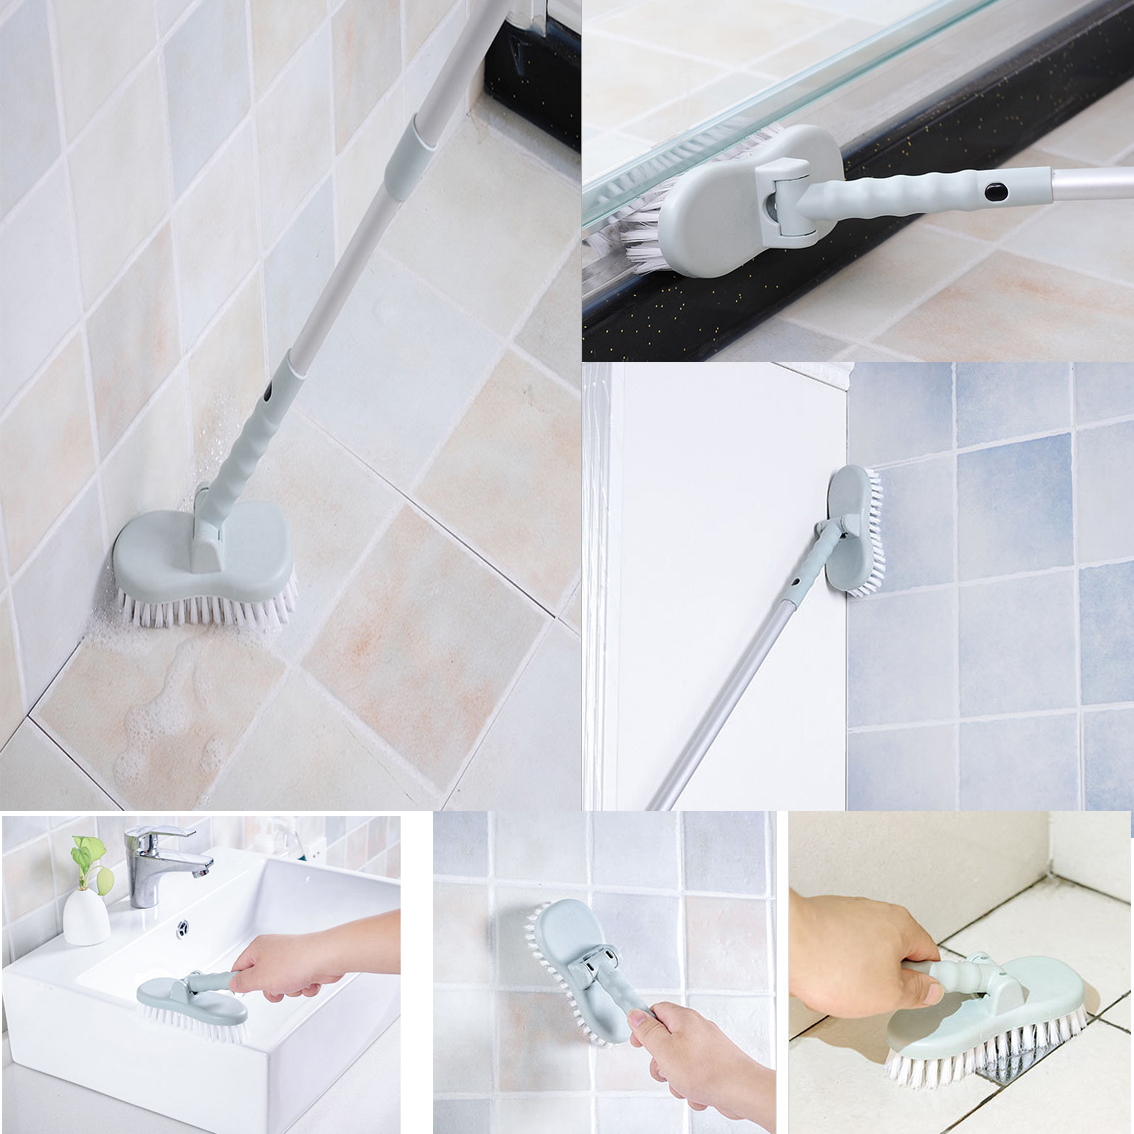 Adjustable Long Handle Cleaning Brush Scrubber for Bathroom Bath Tub ...